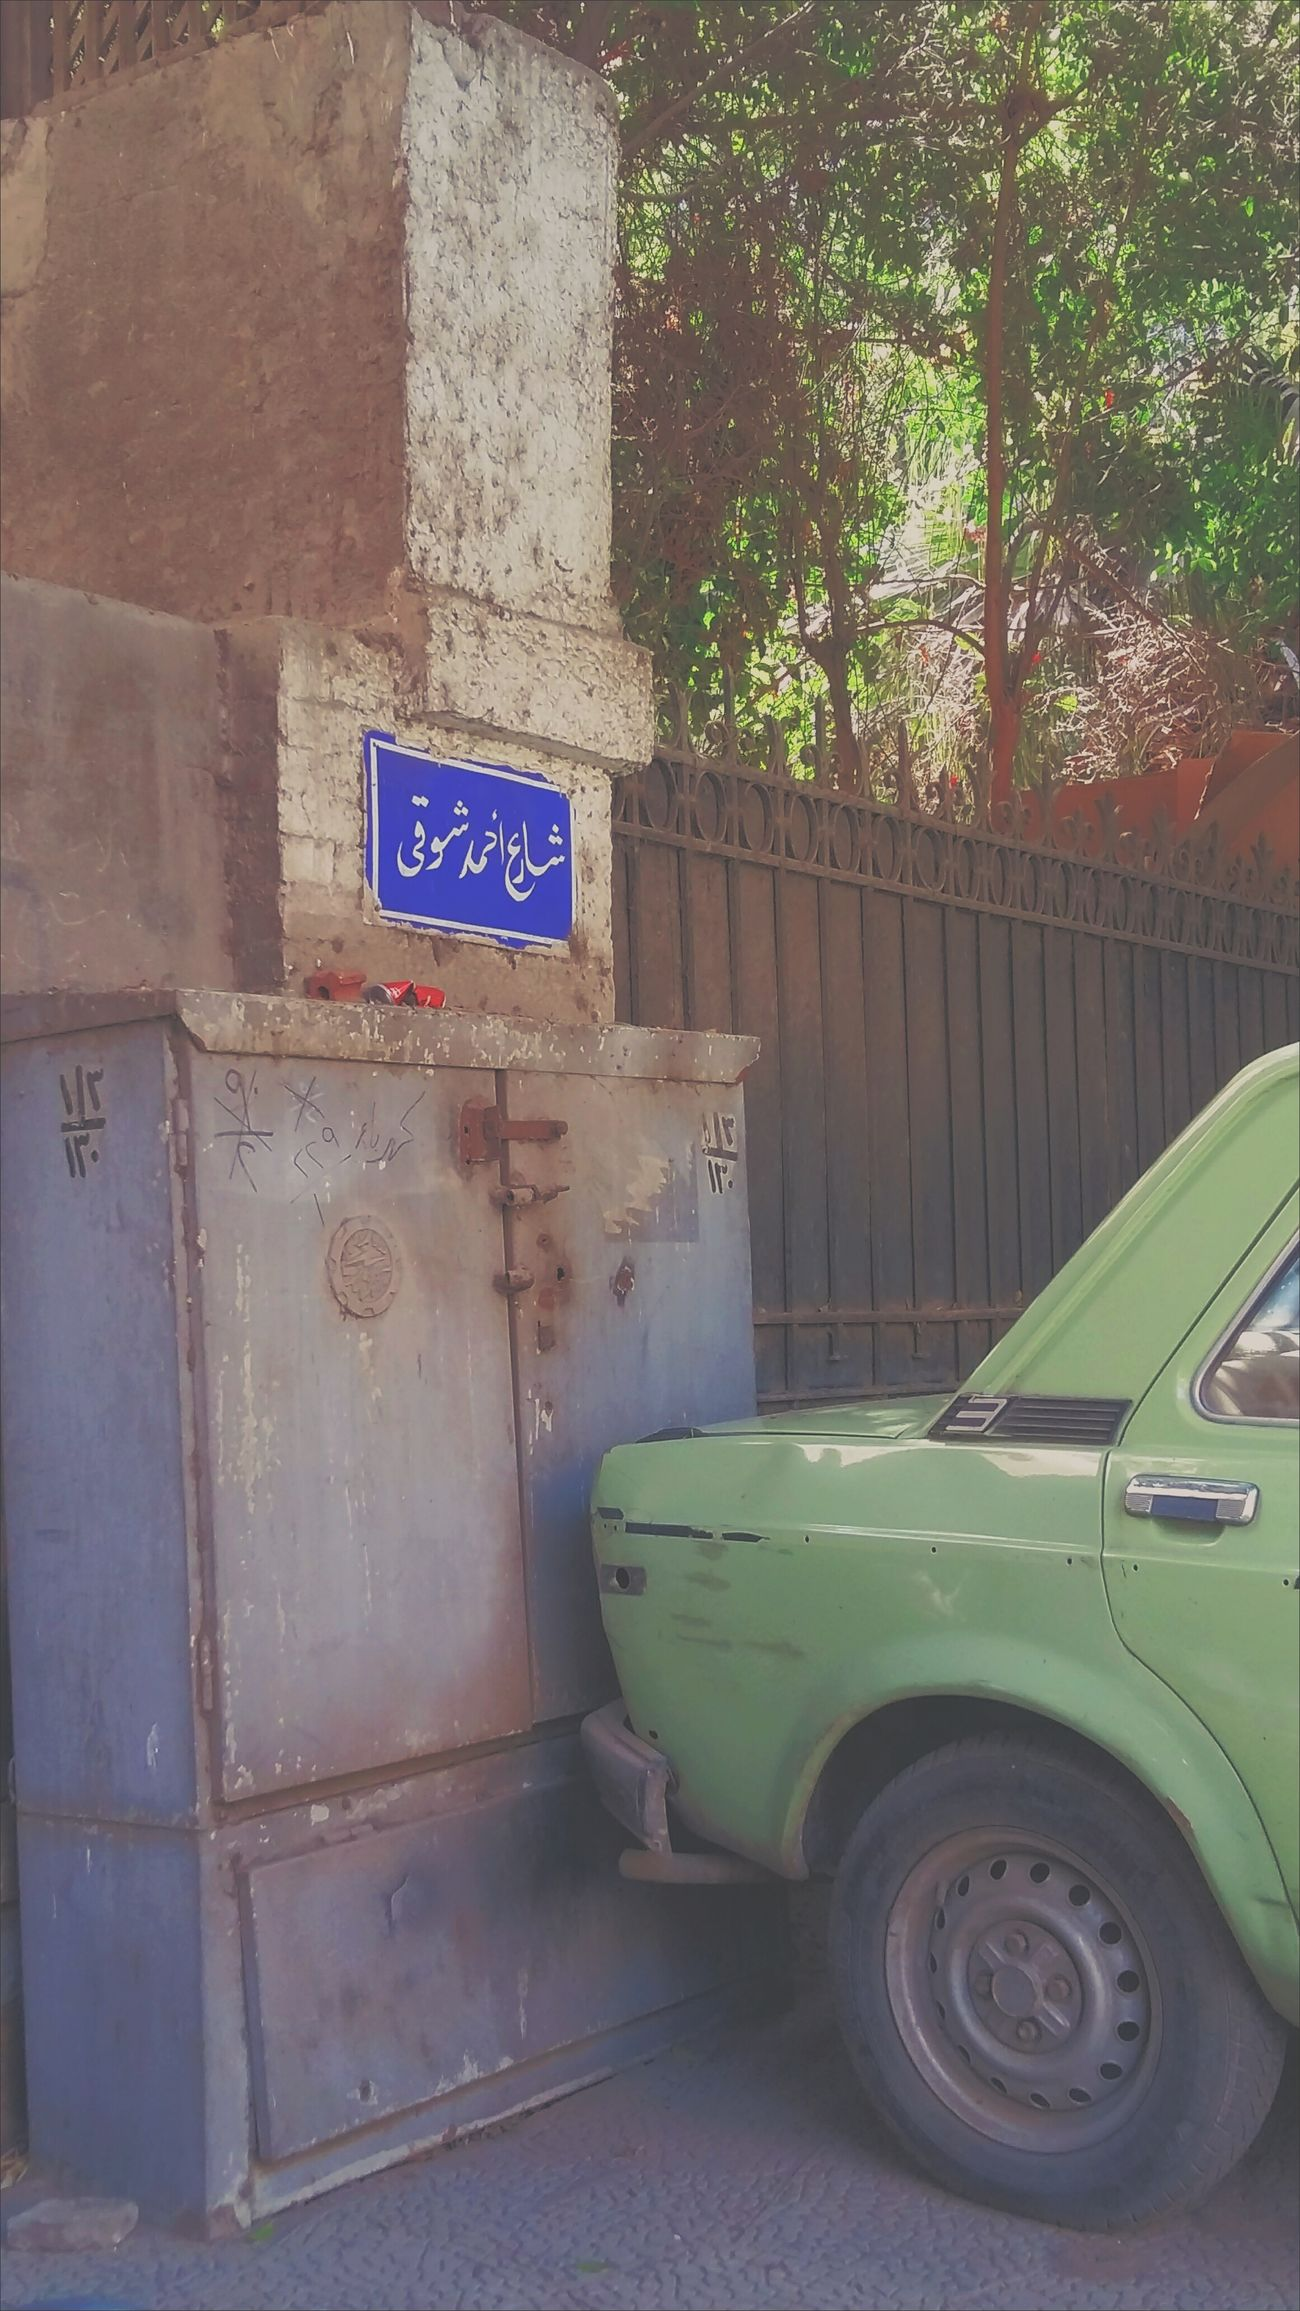 Outdoors Car Day No People Waiting Taking Pictures Sitting Comfortably Colorphotography Street Building Exterior Fence LADA Retro Style Good Afternoon Ordinary Day